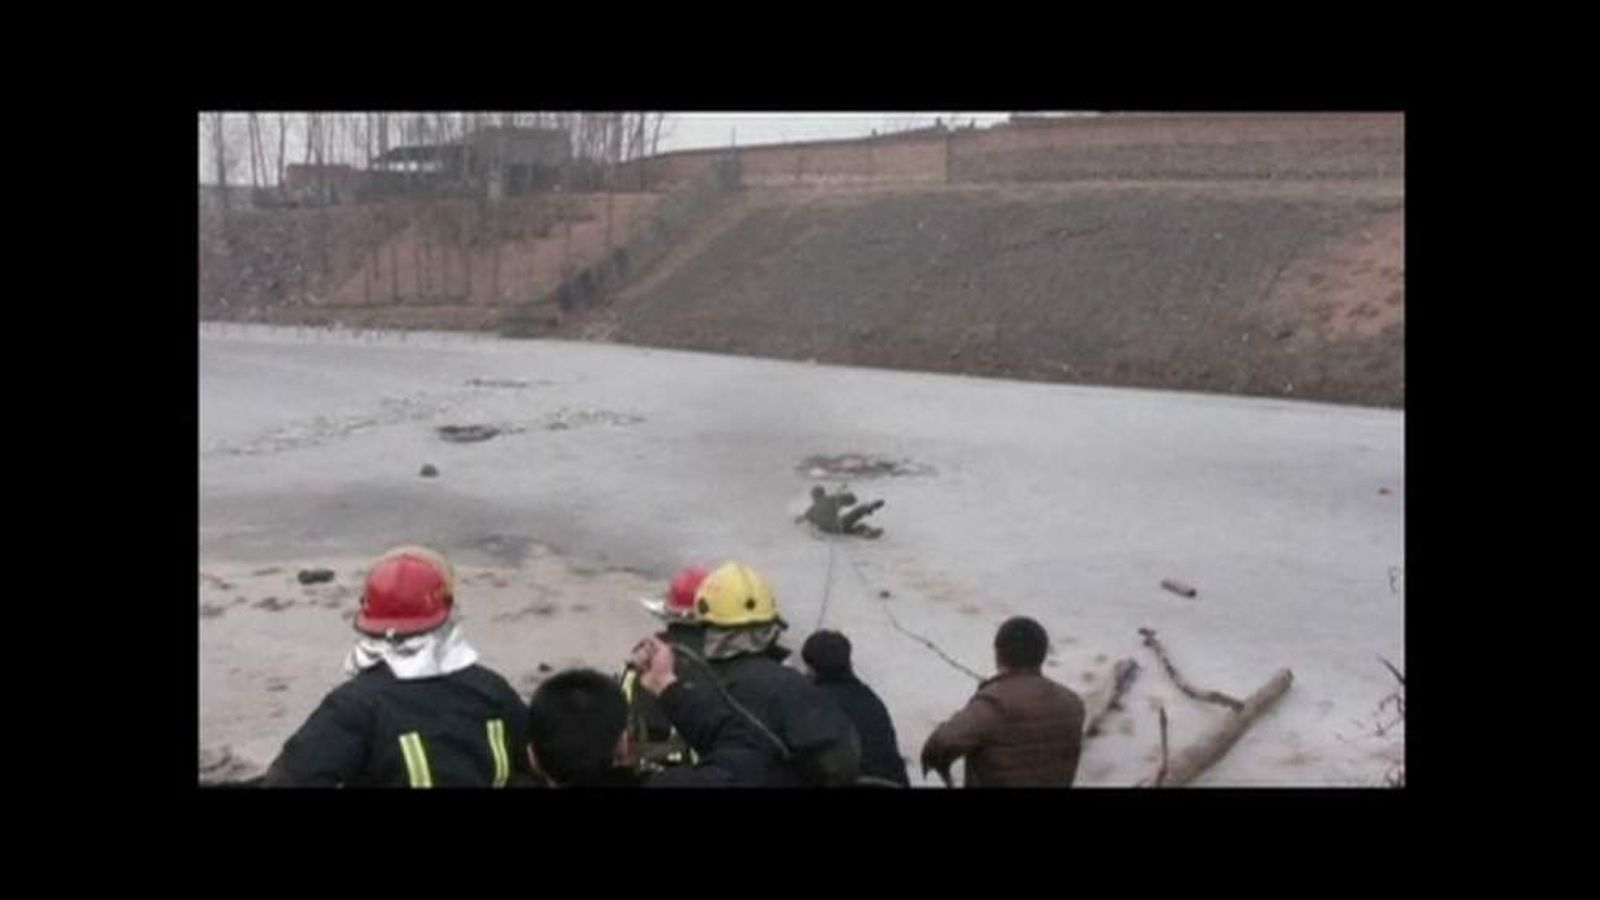 Rescue worker falls into frozen river in China while trying to find six missing children